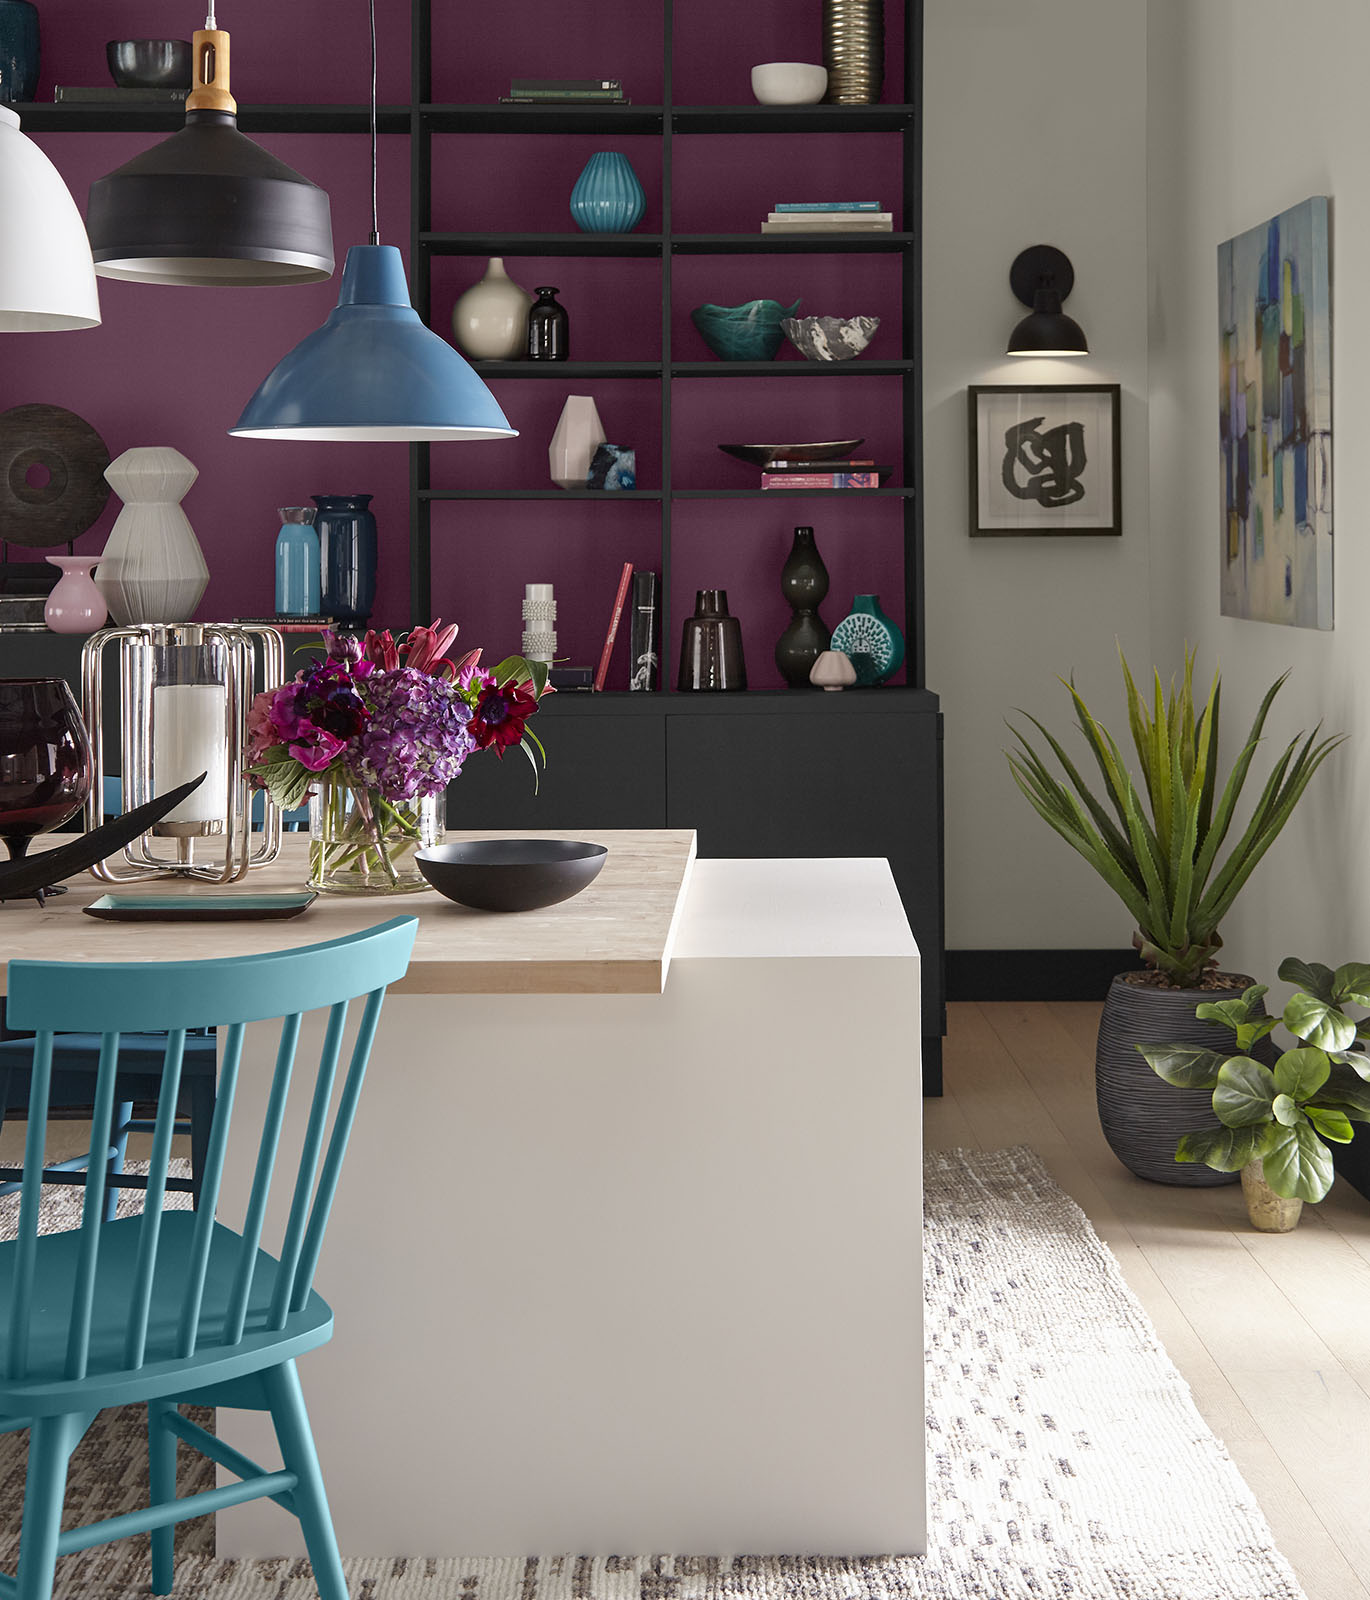 A dining room with a white and wood table in the foreground. In the background is a bookshelf painted a magenta color inside the shelves and black for the cabinet. The room gives off an optimistic vibe.